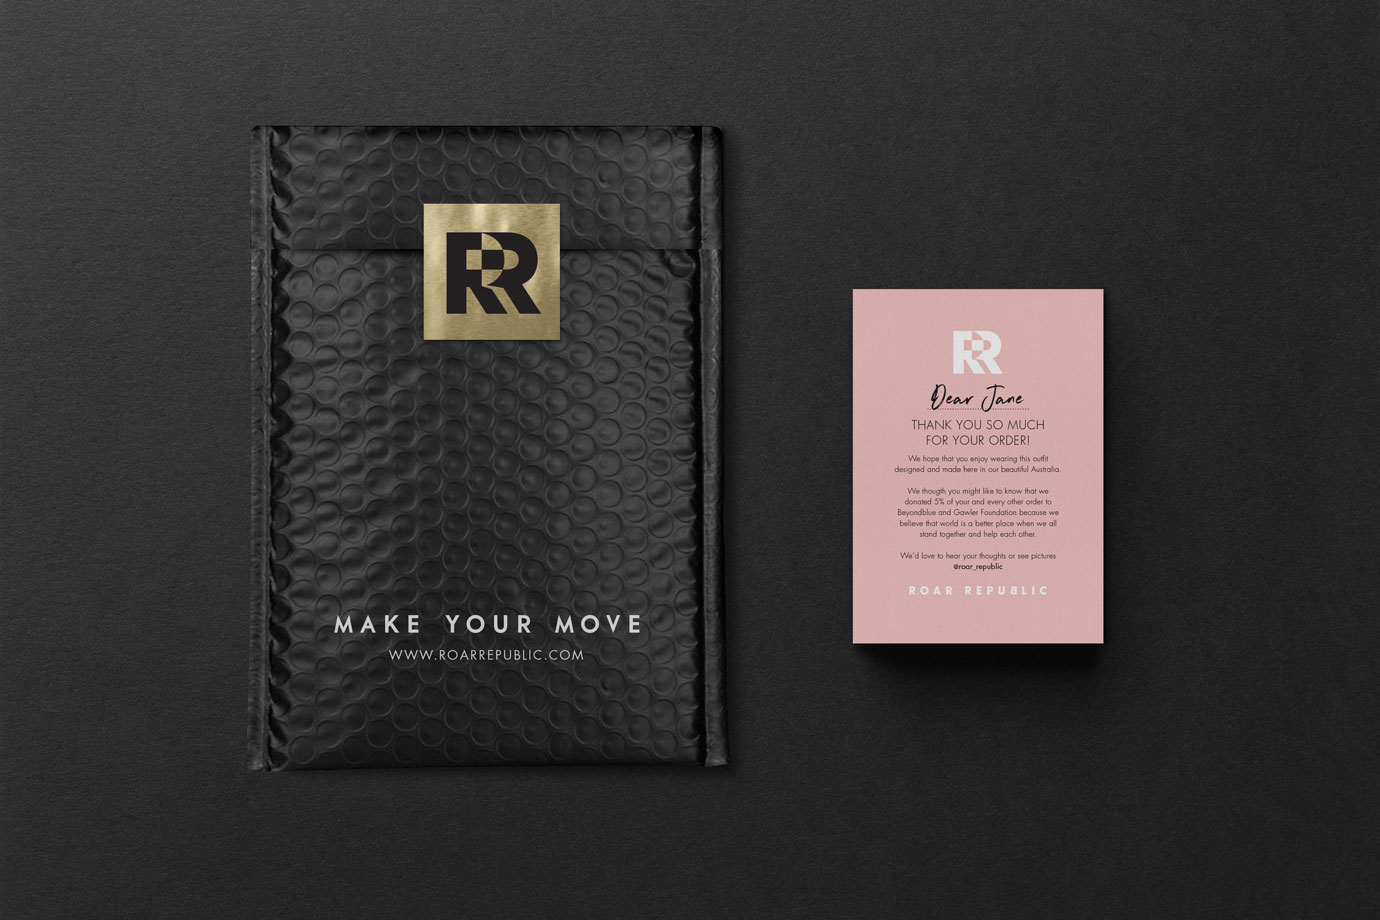 Roar Republic mailing bag and thank you card design